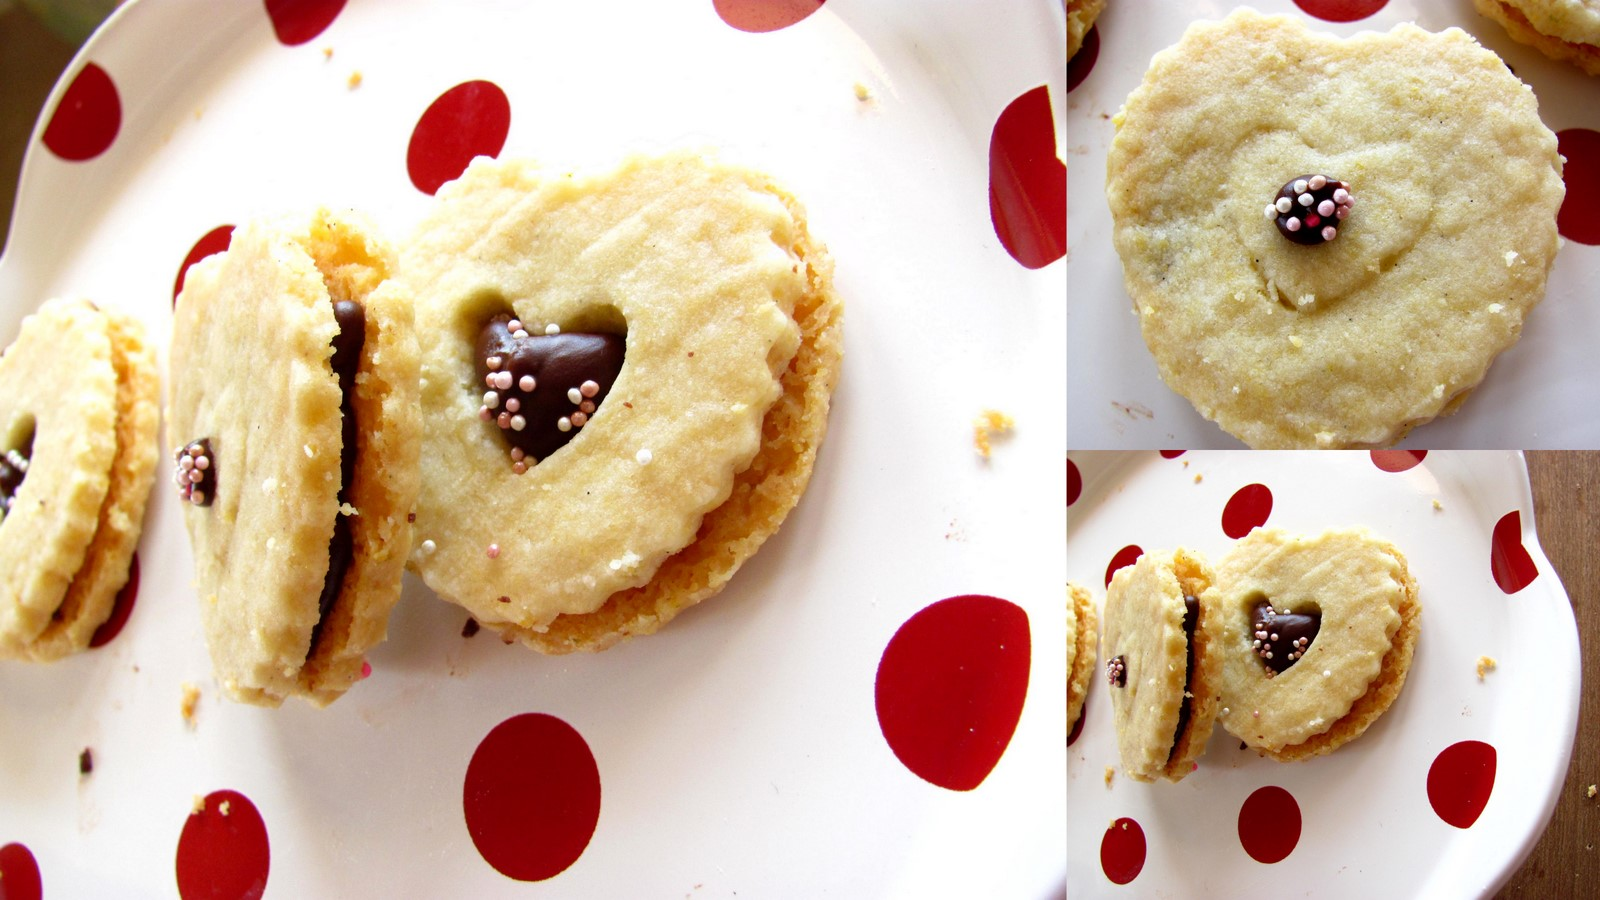 ... ♥: BUTTERY CRUNCHY LEMON VANILLA CORNMEAL SHORTBREAD COOKIES @ BWD